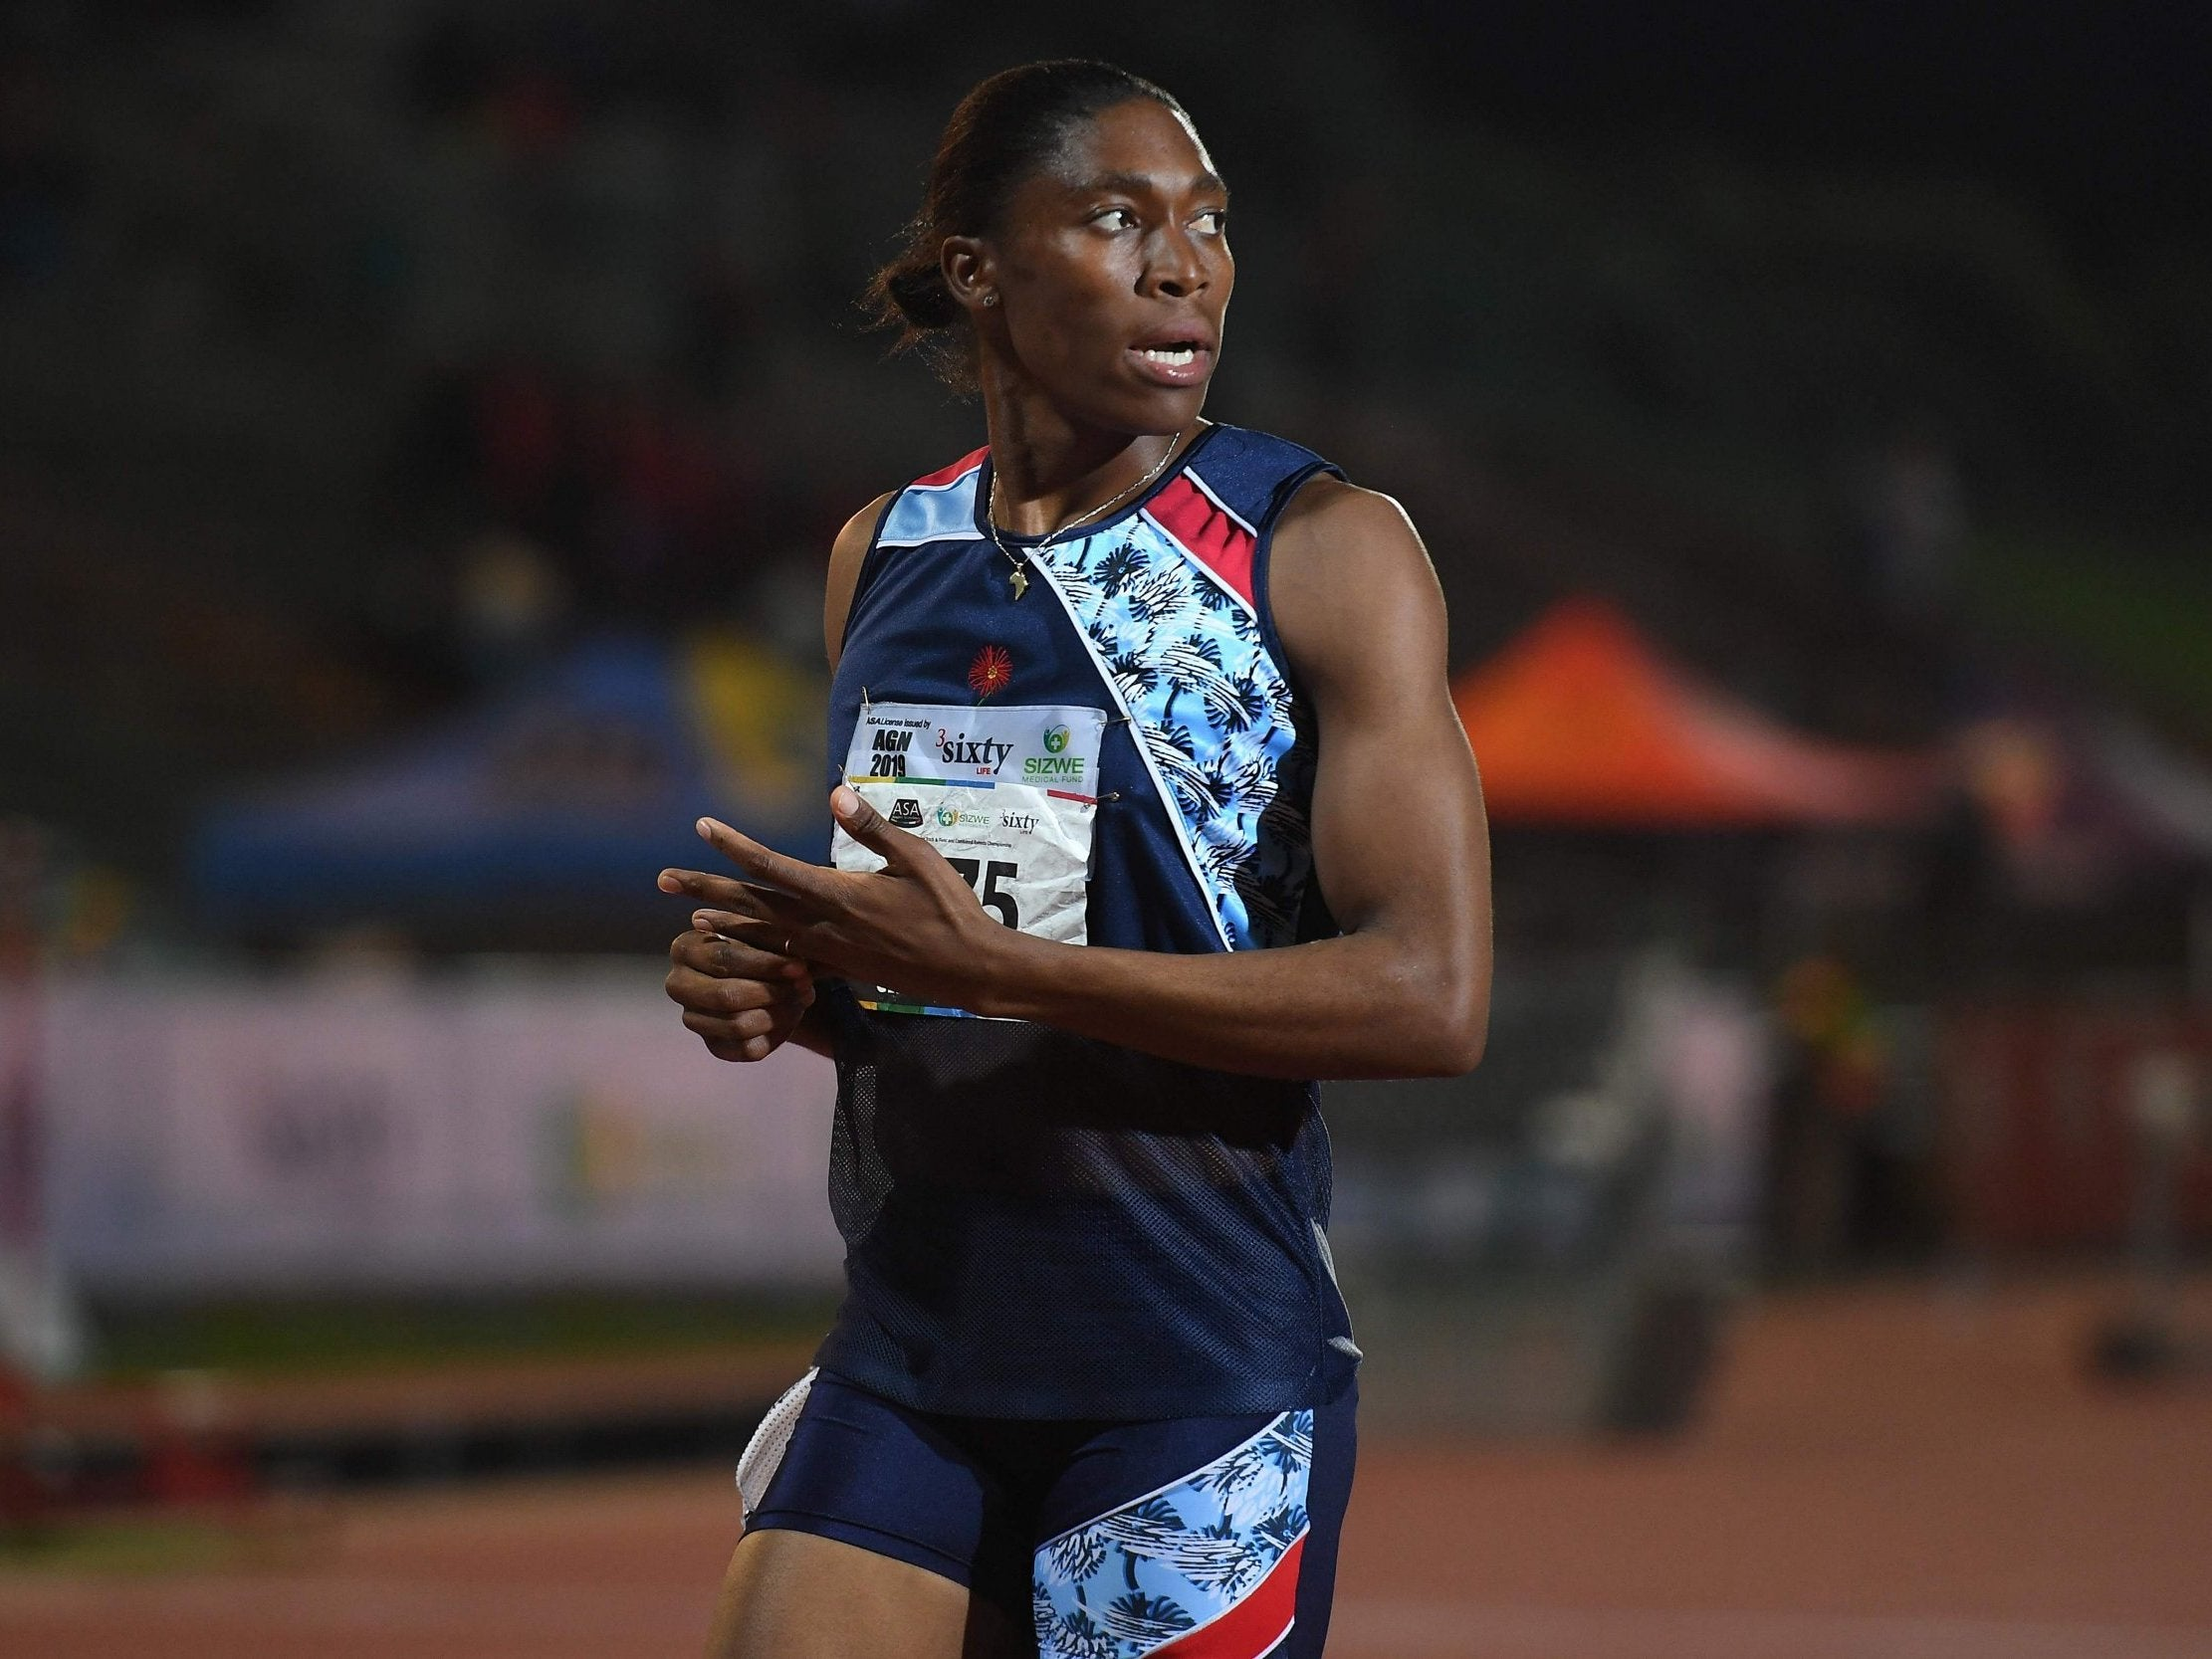 Caster Semenya hints at athletics retirement with cryptic Twitter posts after losing appeal against IAAF rules